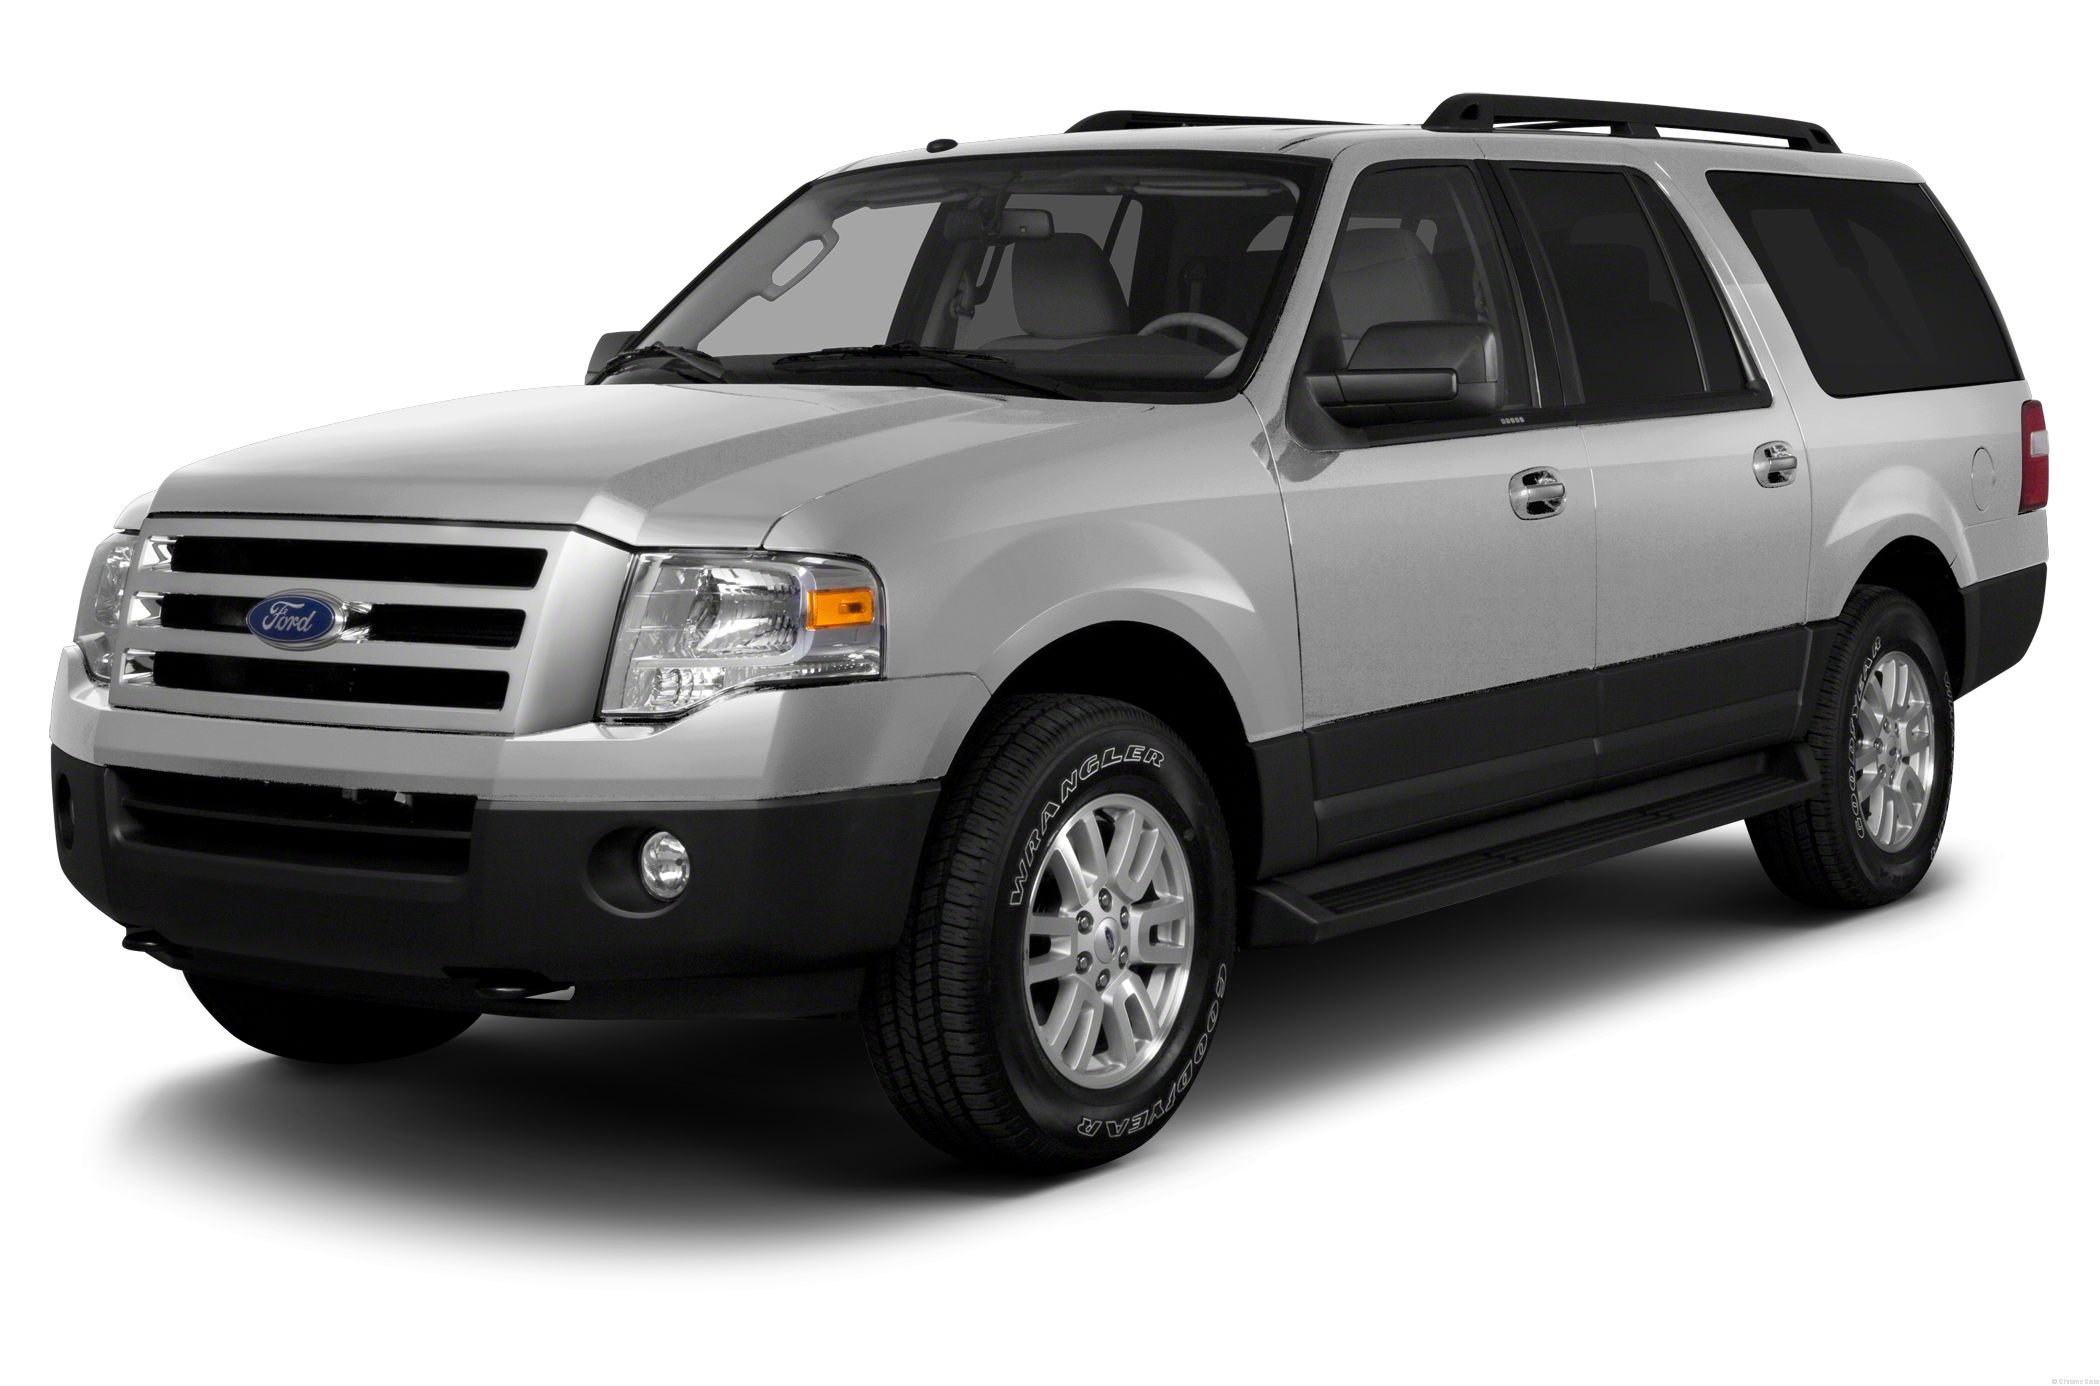 Ford Expedition #19